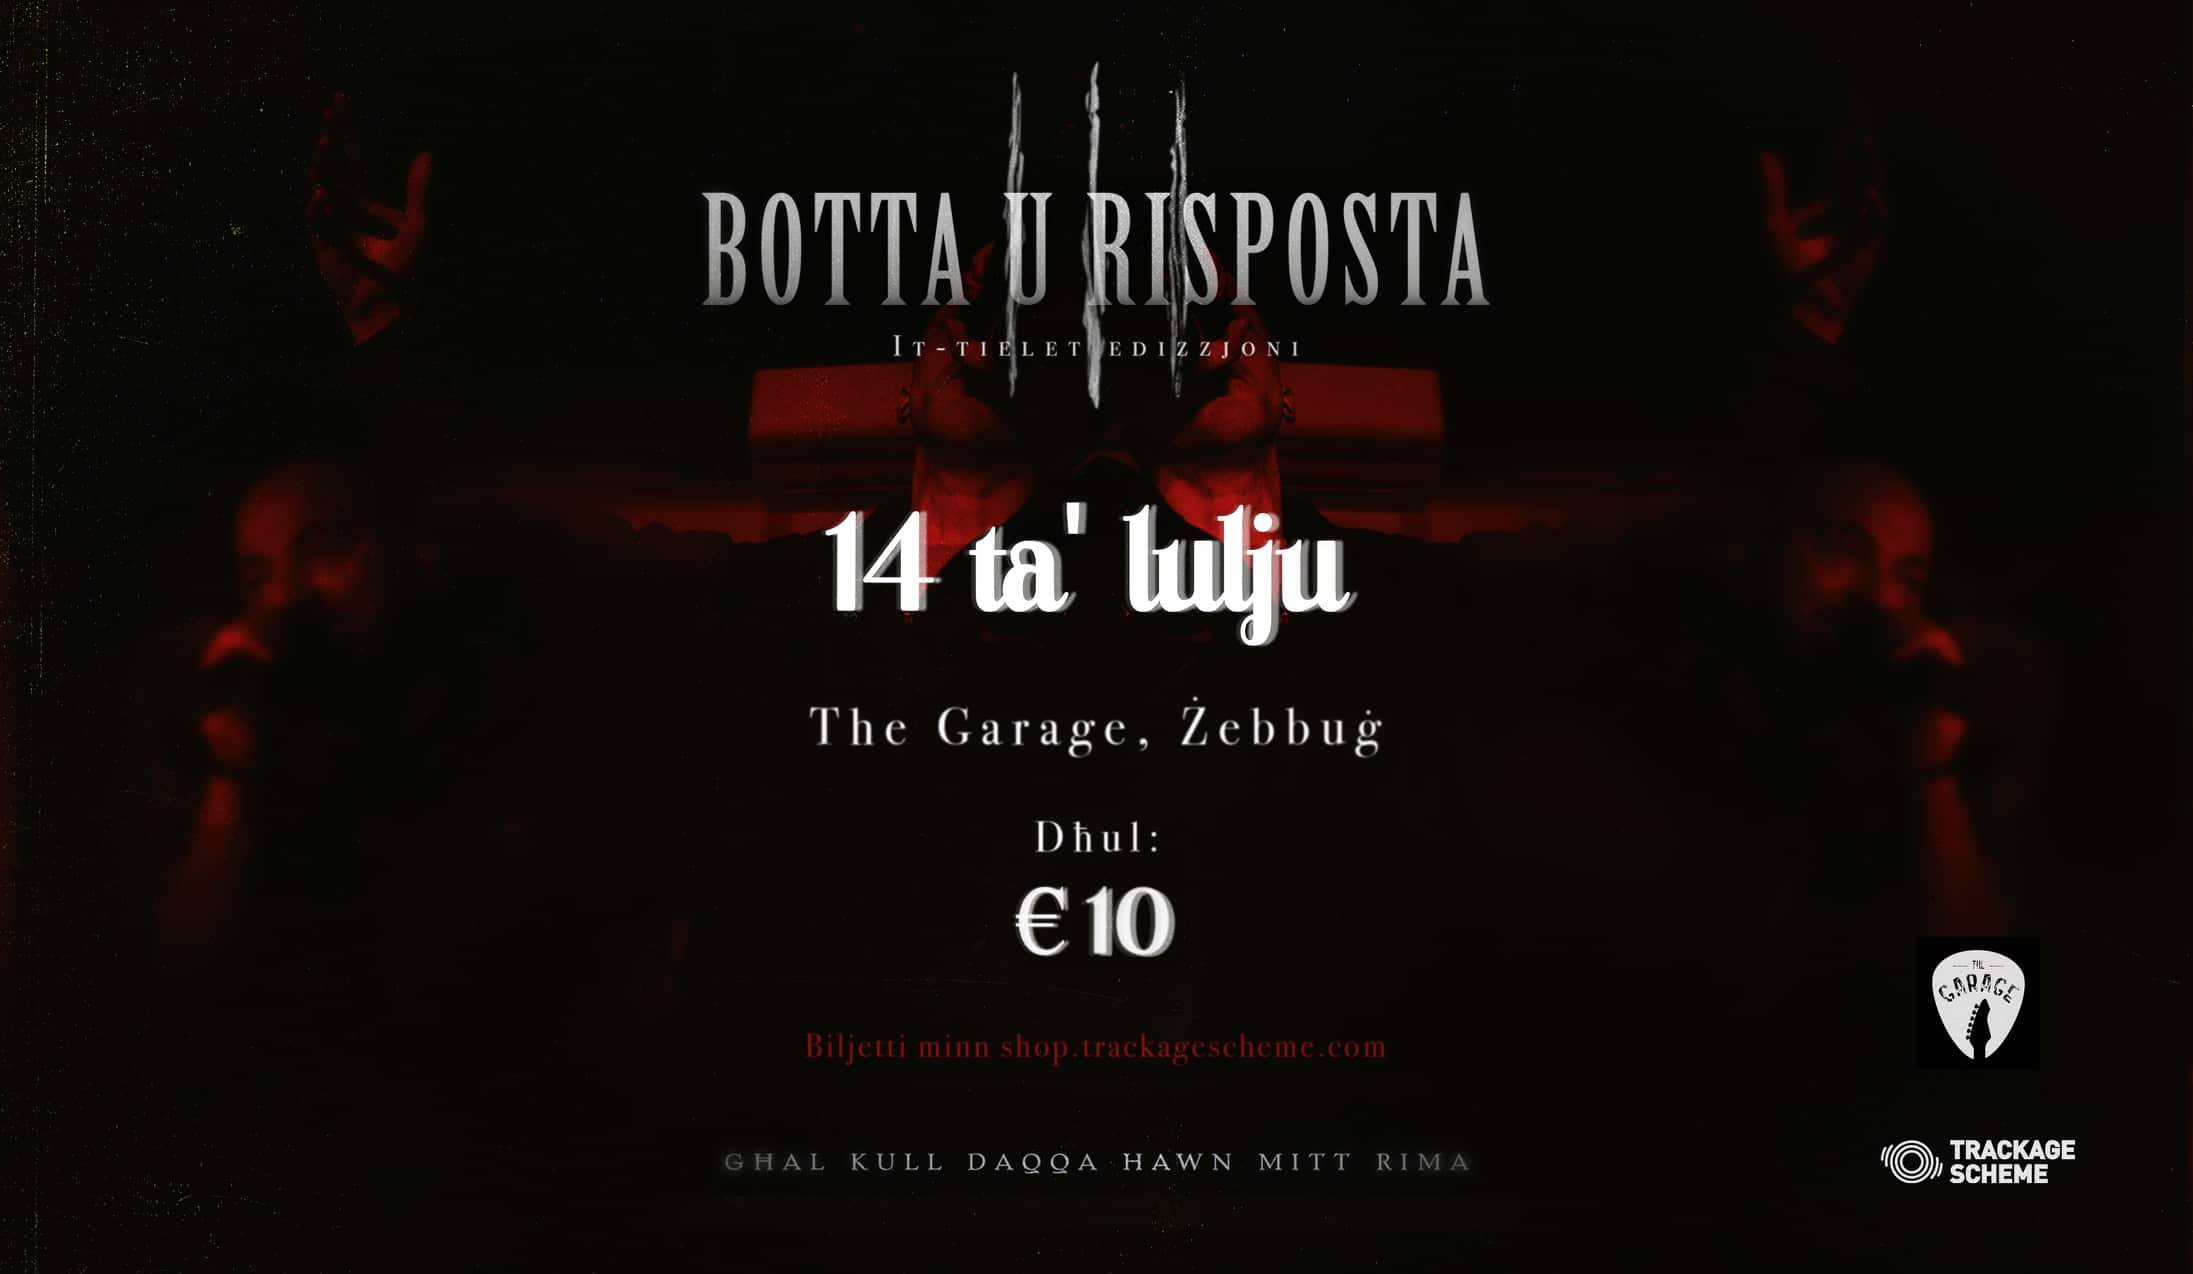 Botta u Risposta III